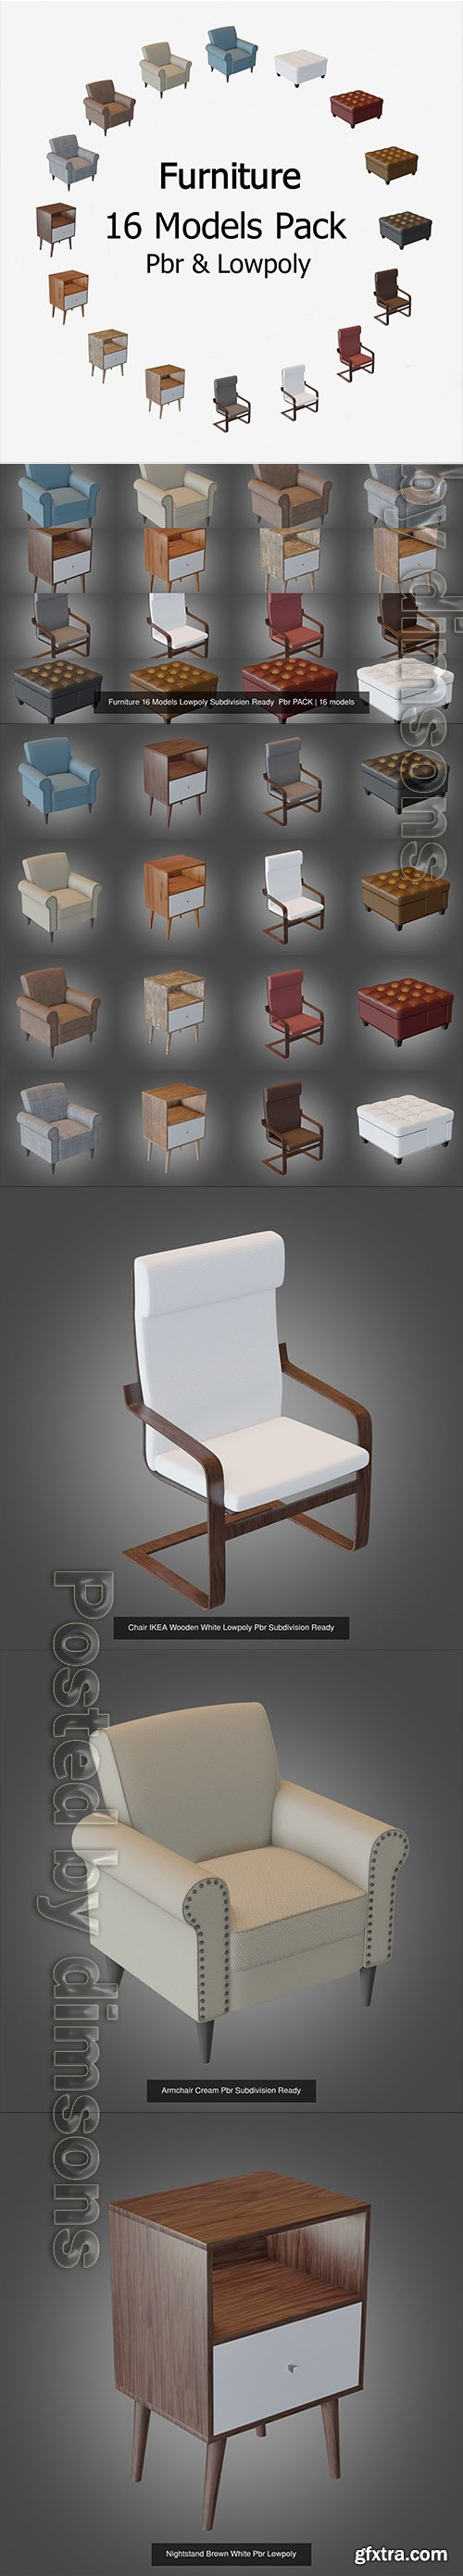 Cgtrader - Furniture 16 Models Lowpoly Subdivision Ready Pbr PACK 3D Model Collection